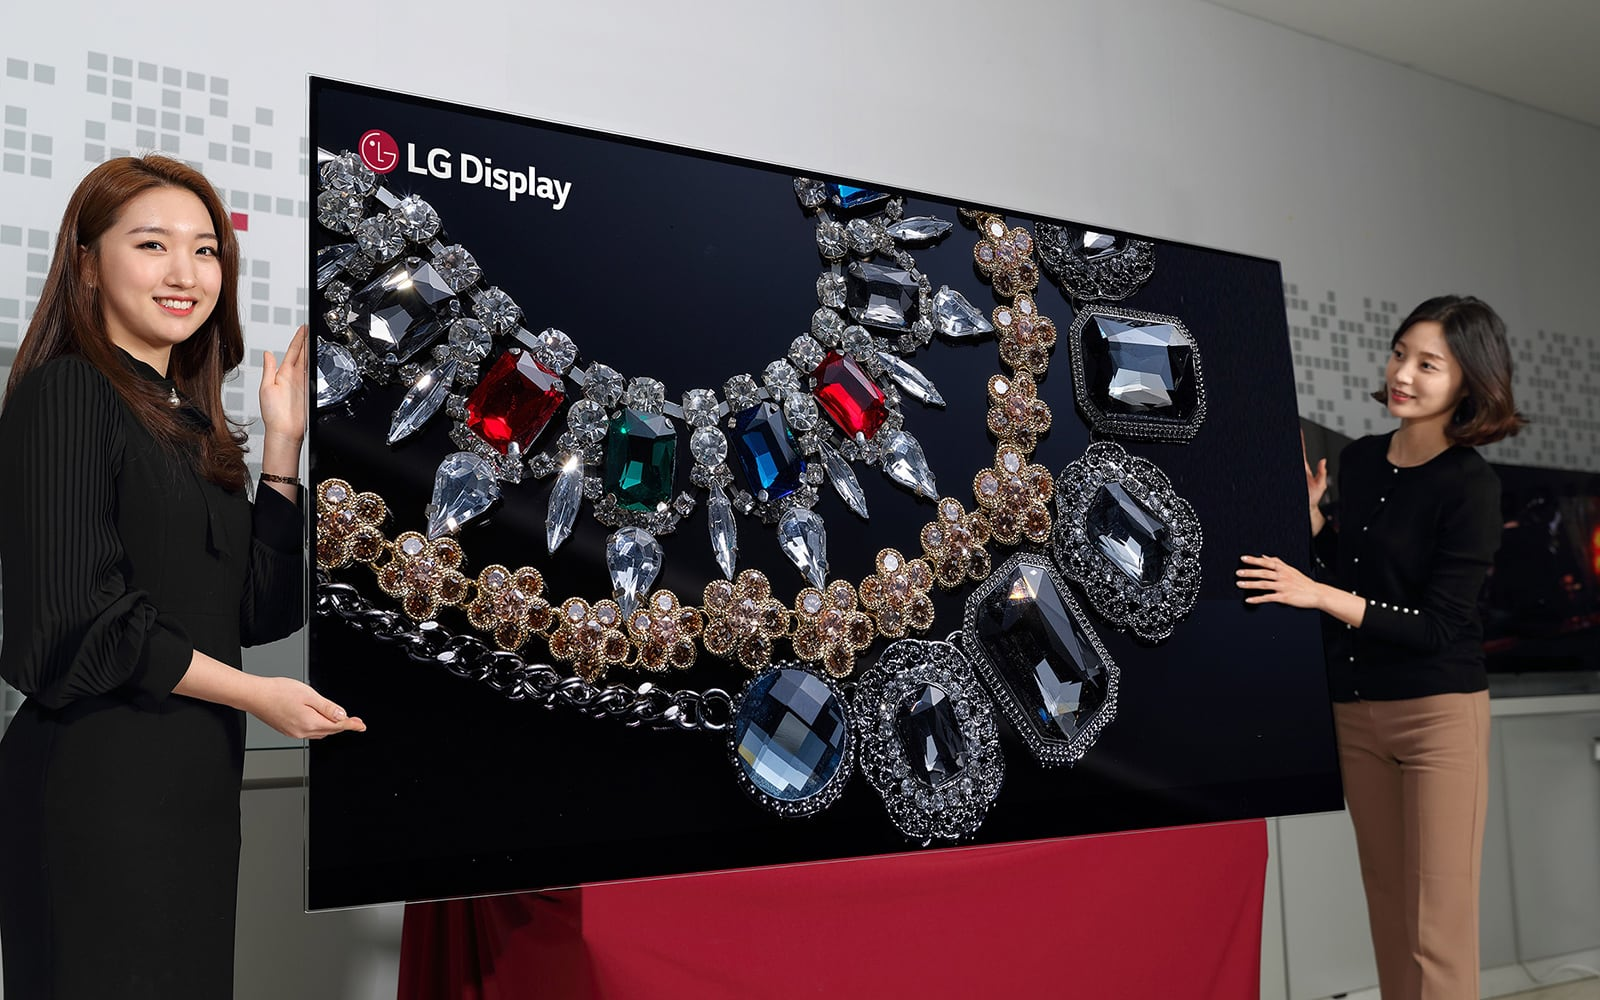 LG Introduces Incredible 88 Inch 8K OLED Display 1